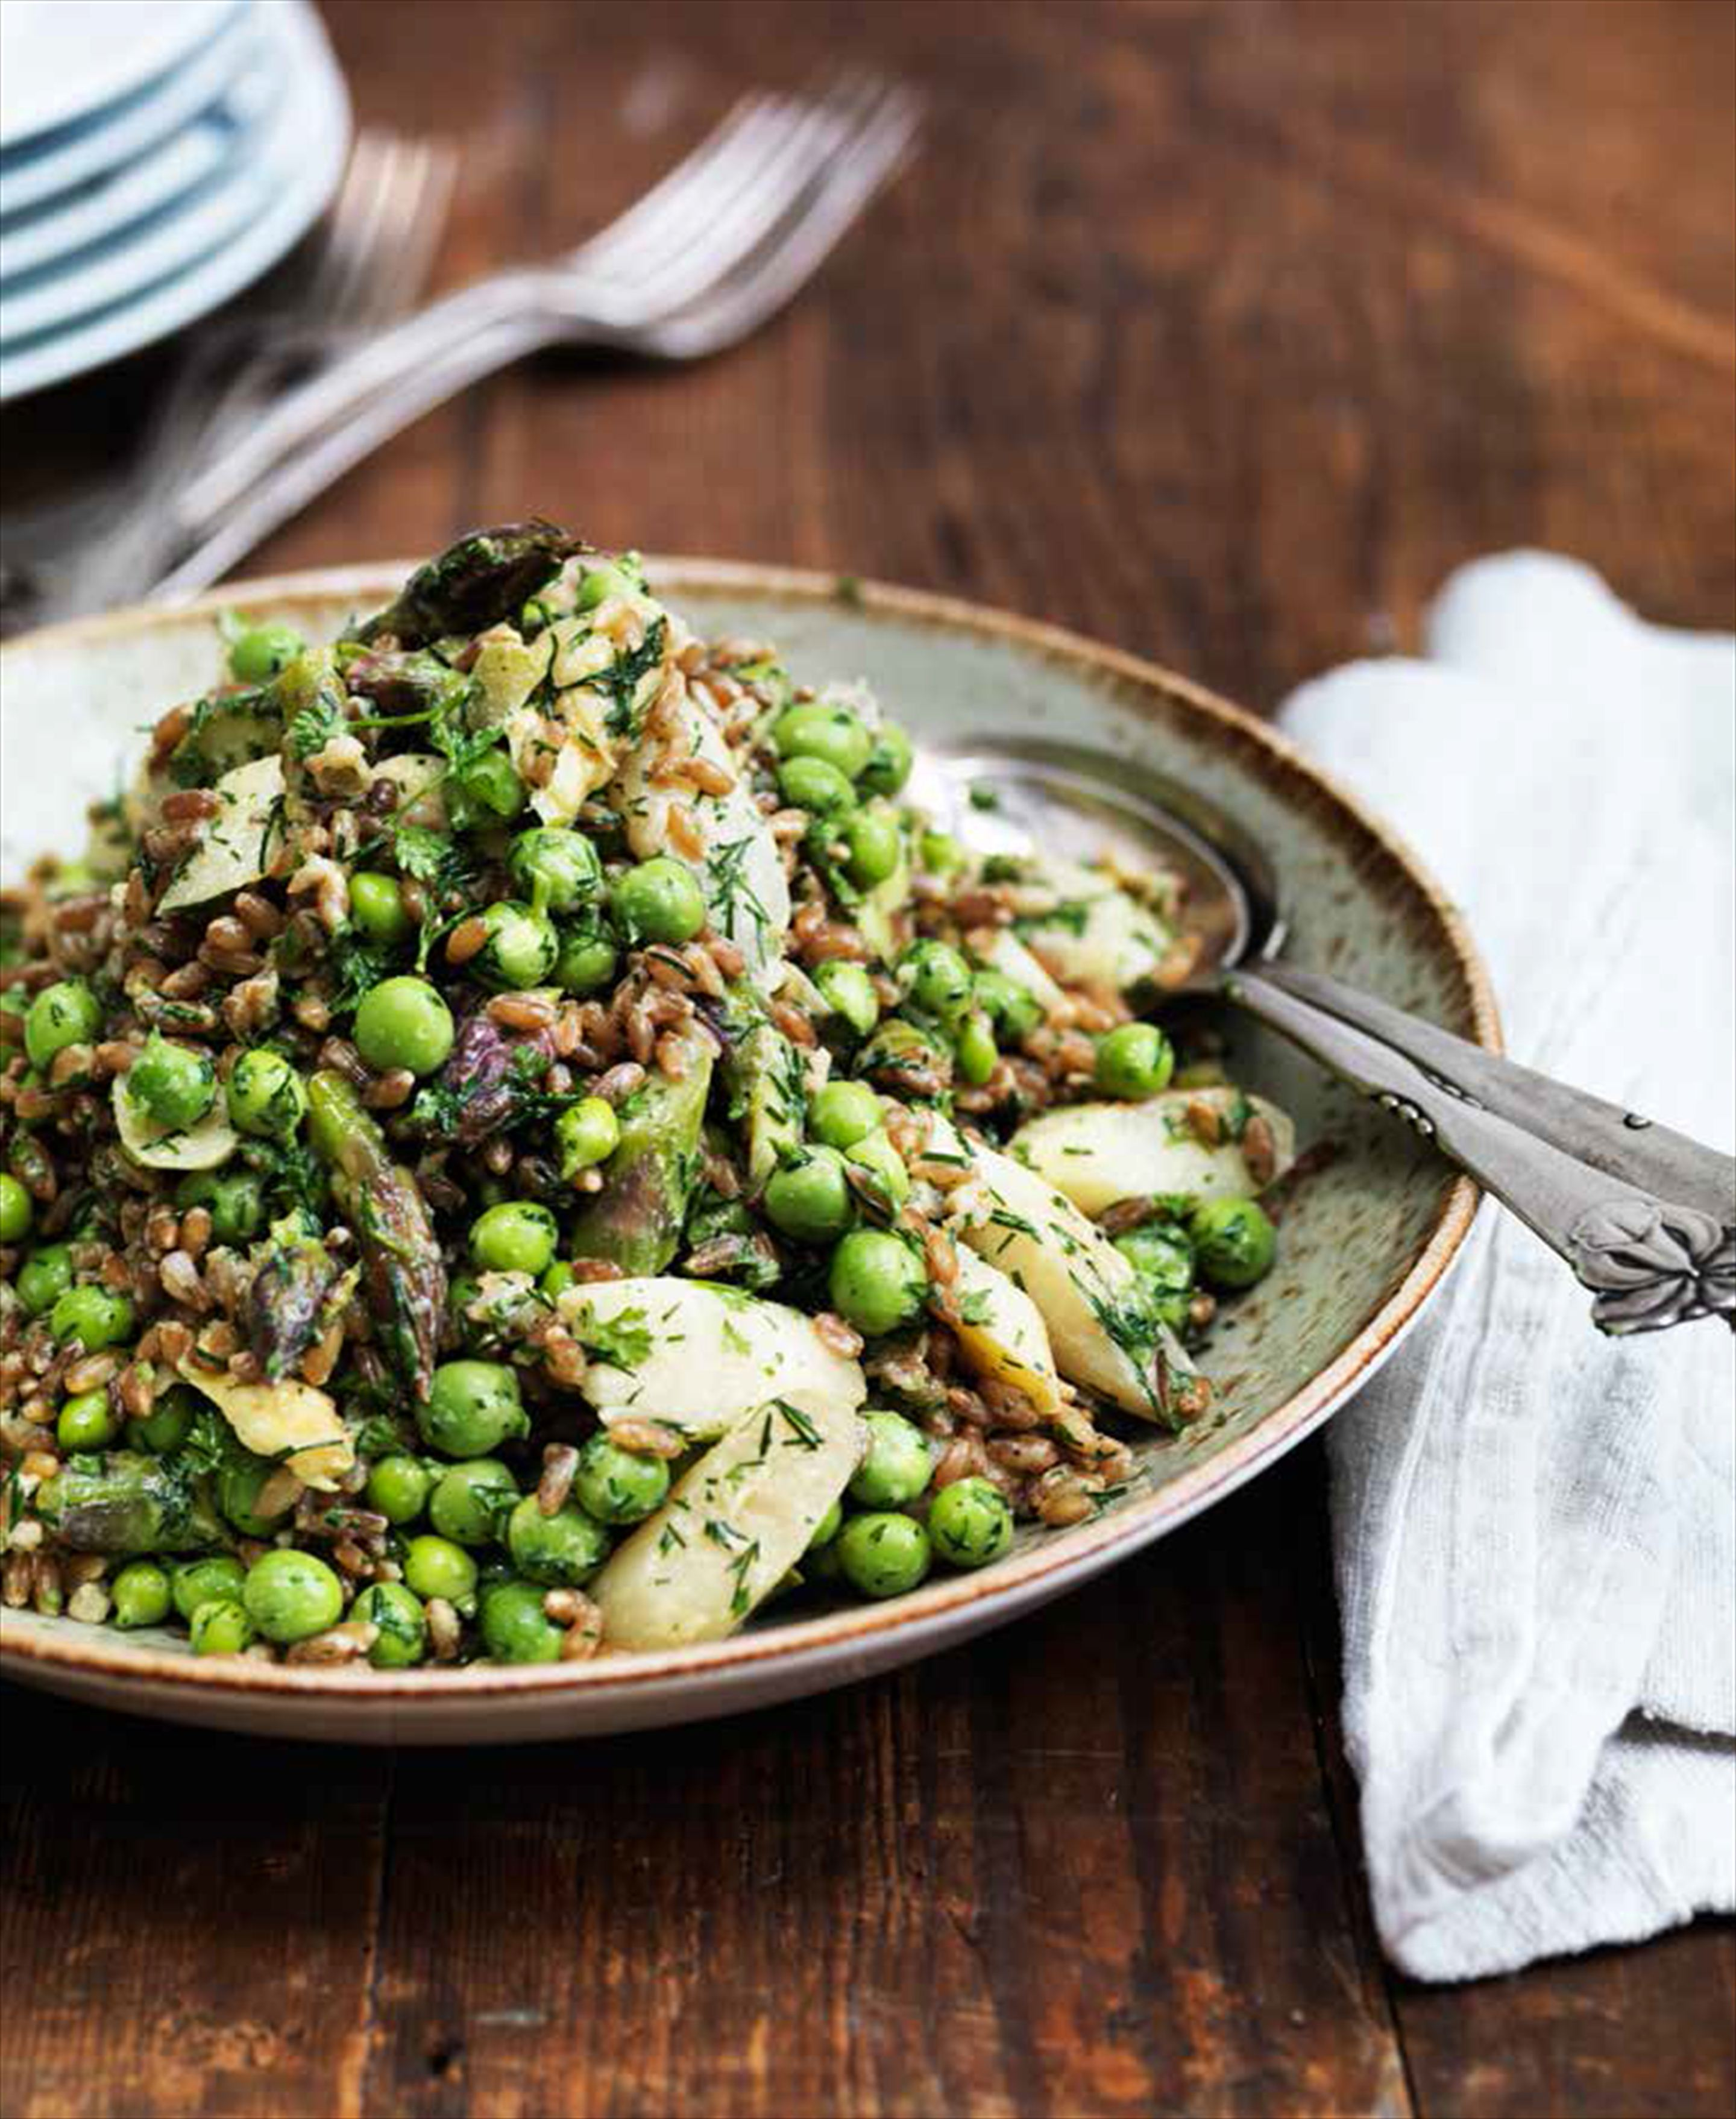 Spring rye grain salad with asparagus, peas and dill